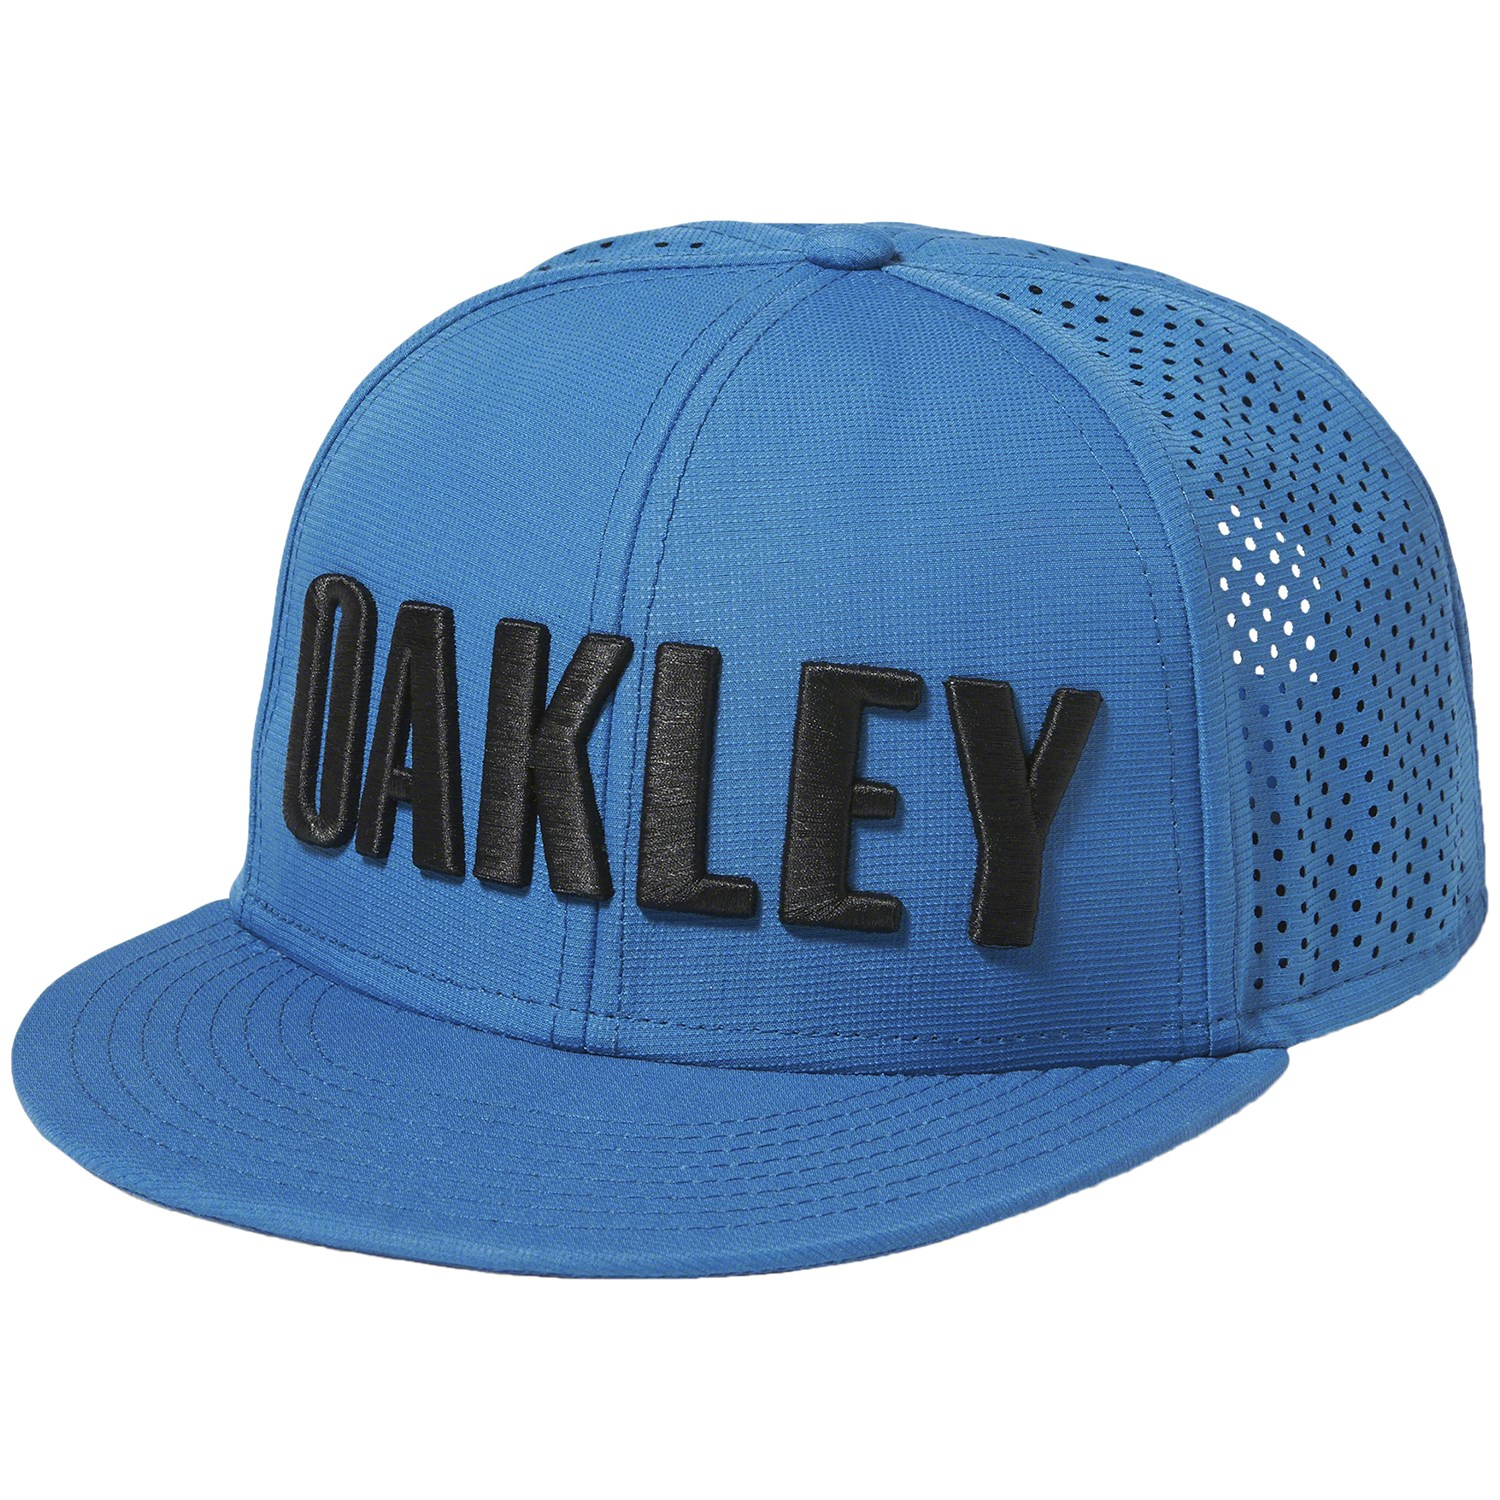 quality design 97ebe 20305 ... where can i buy oakley perf hat evo dbe86 23a2c